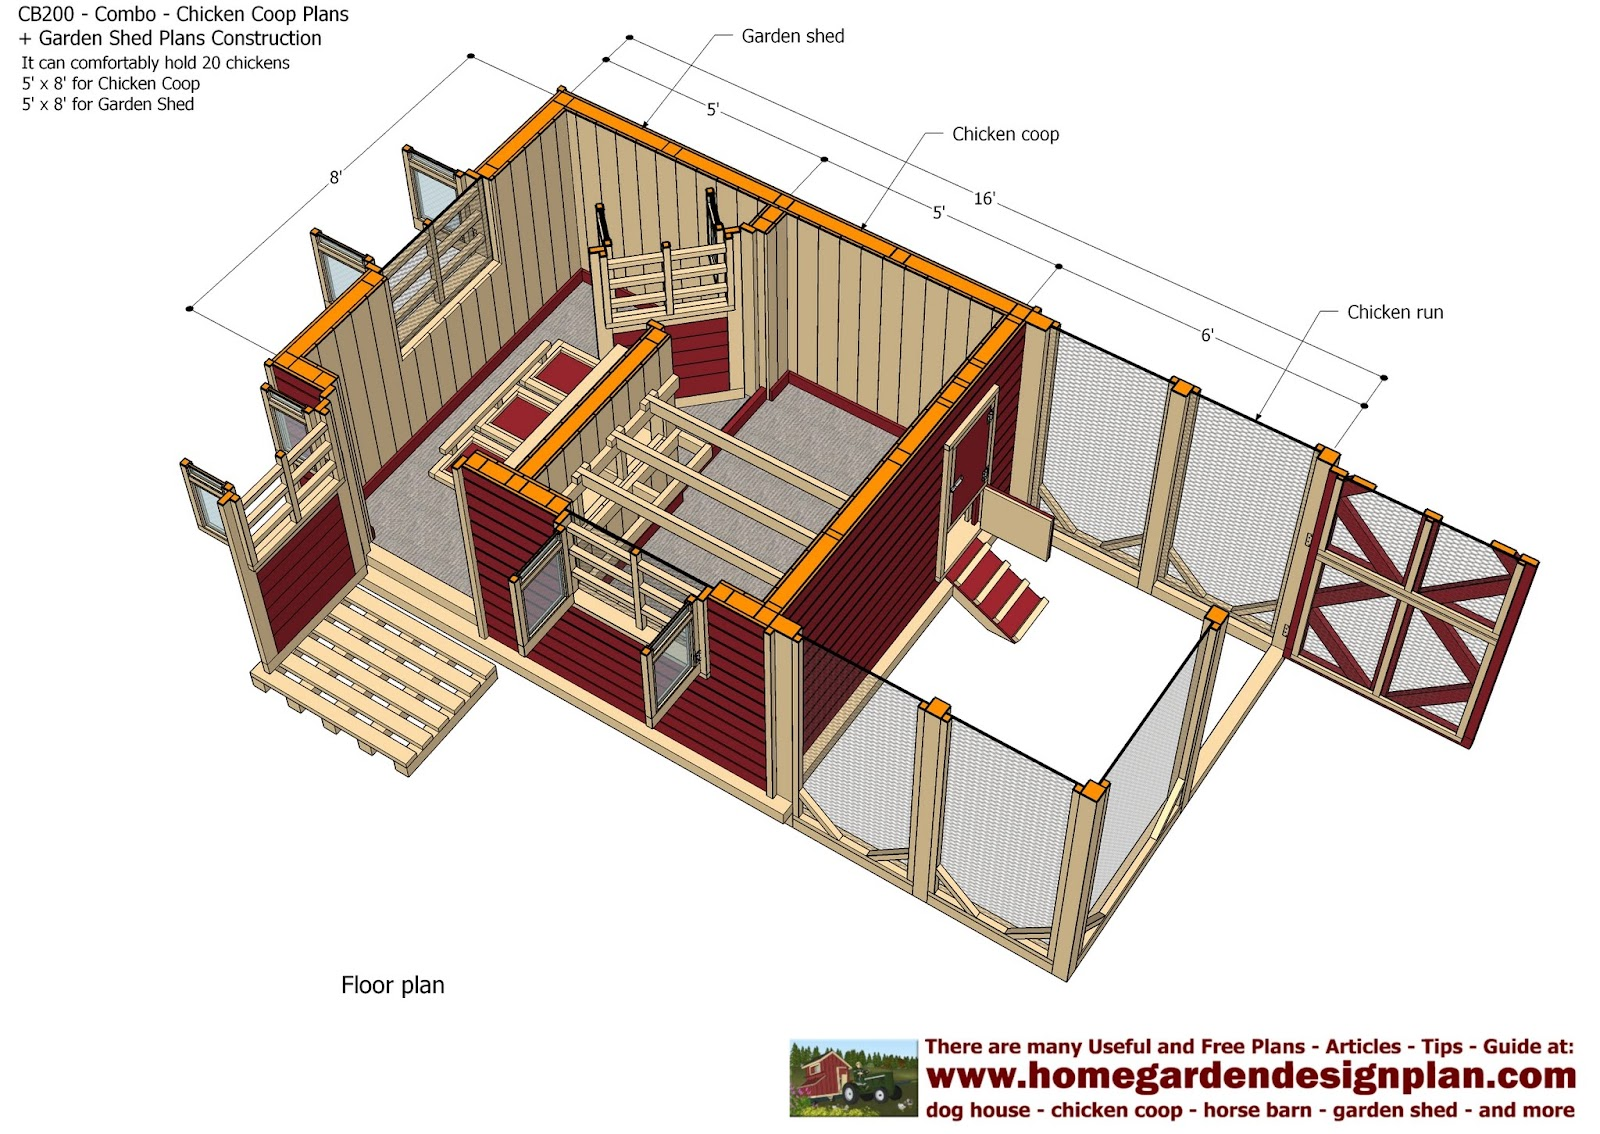 home garden plans cb200 combo plans chicken coop